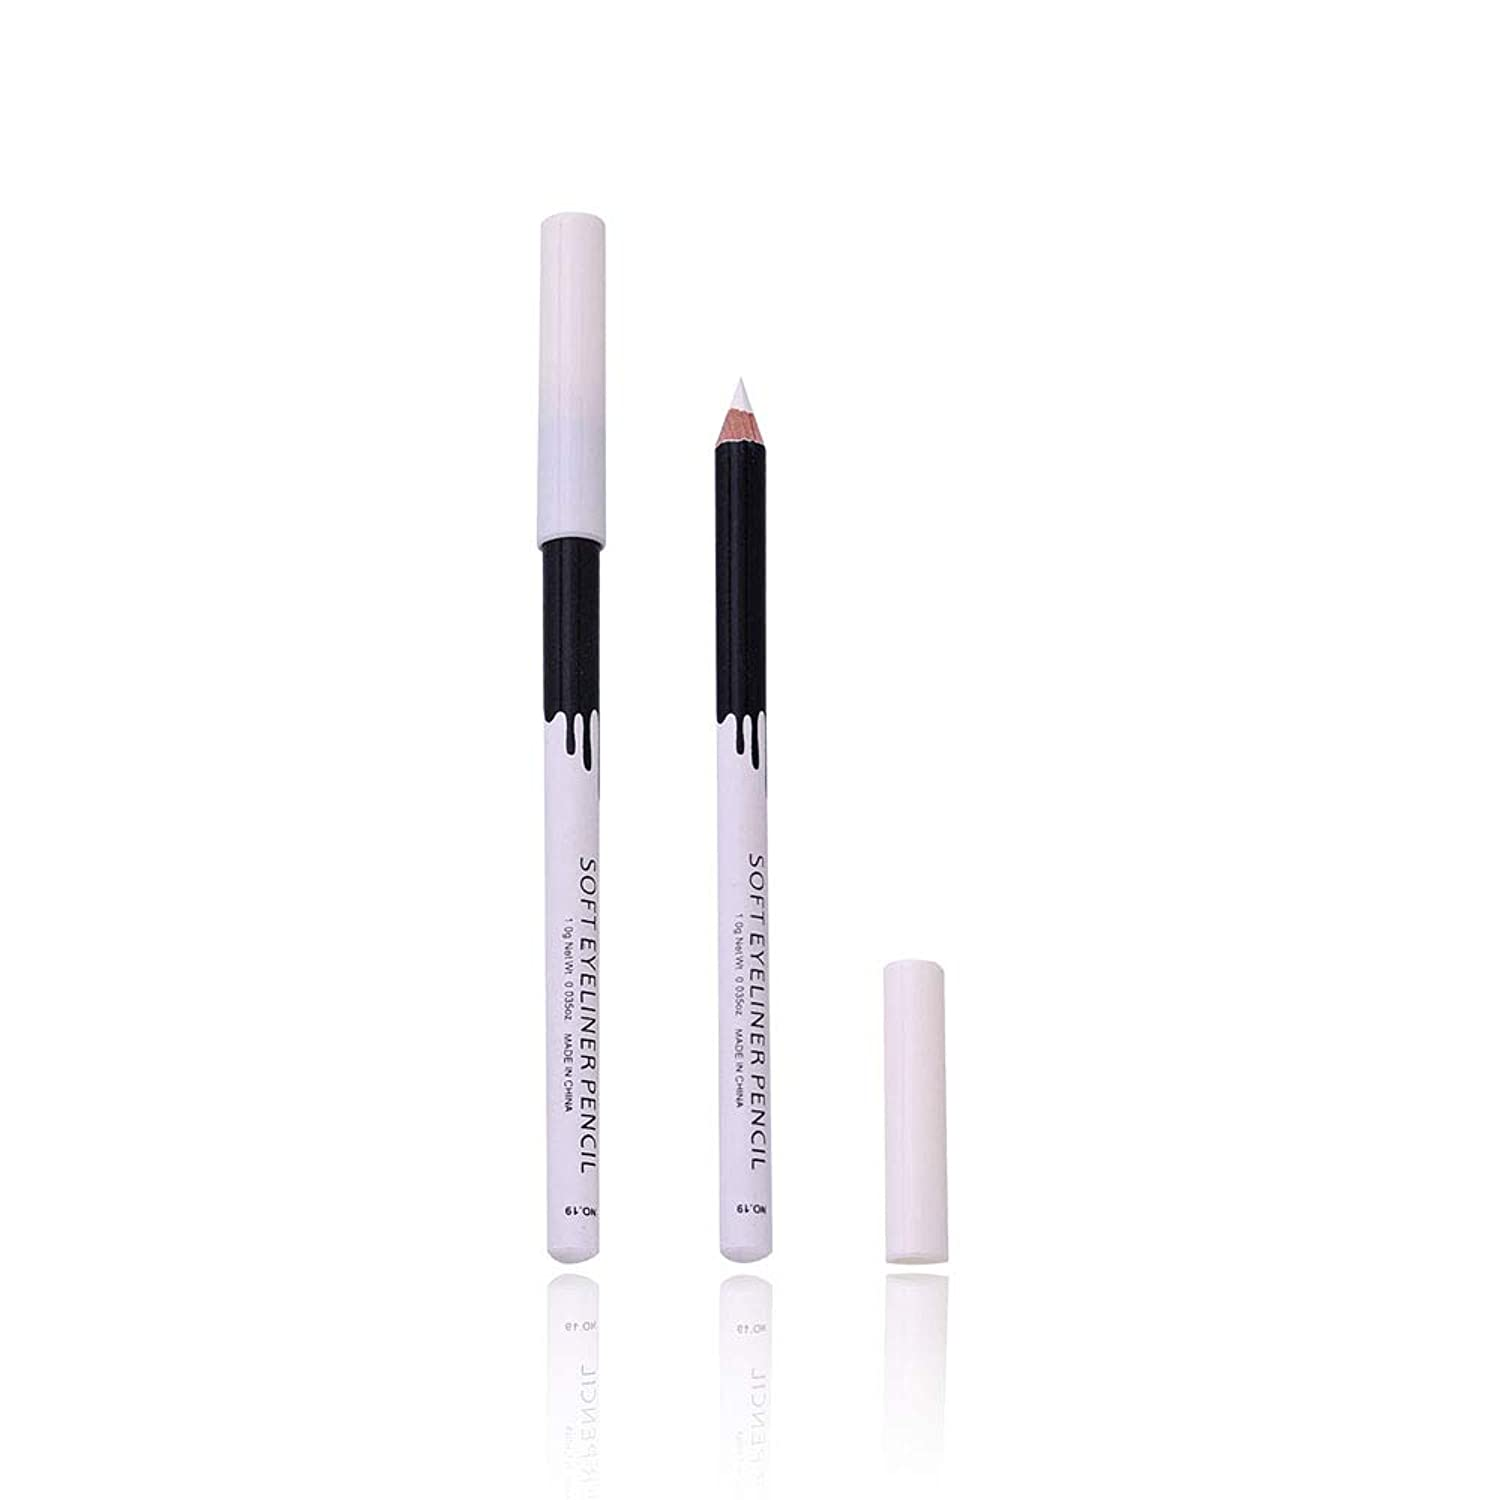 White Eyeliner Makeup Smooth Easy To Wear Eyes Brightener Eye Liner Pen Waterproof Make Up White Eyes Liner Pencils L6623 pgqaws4797371